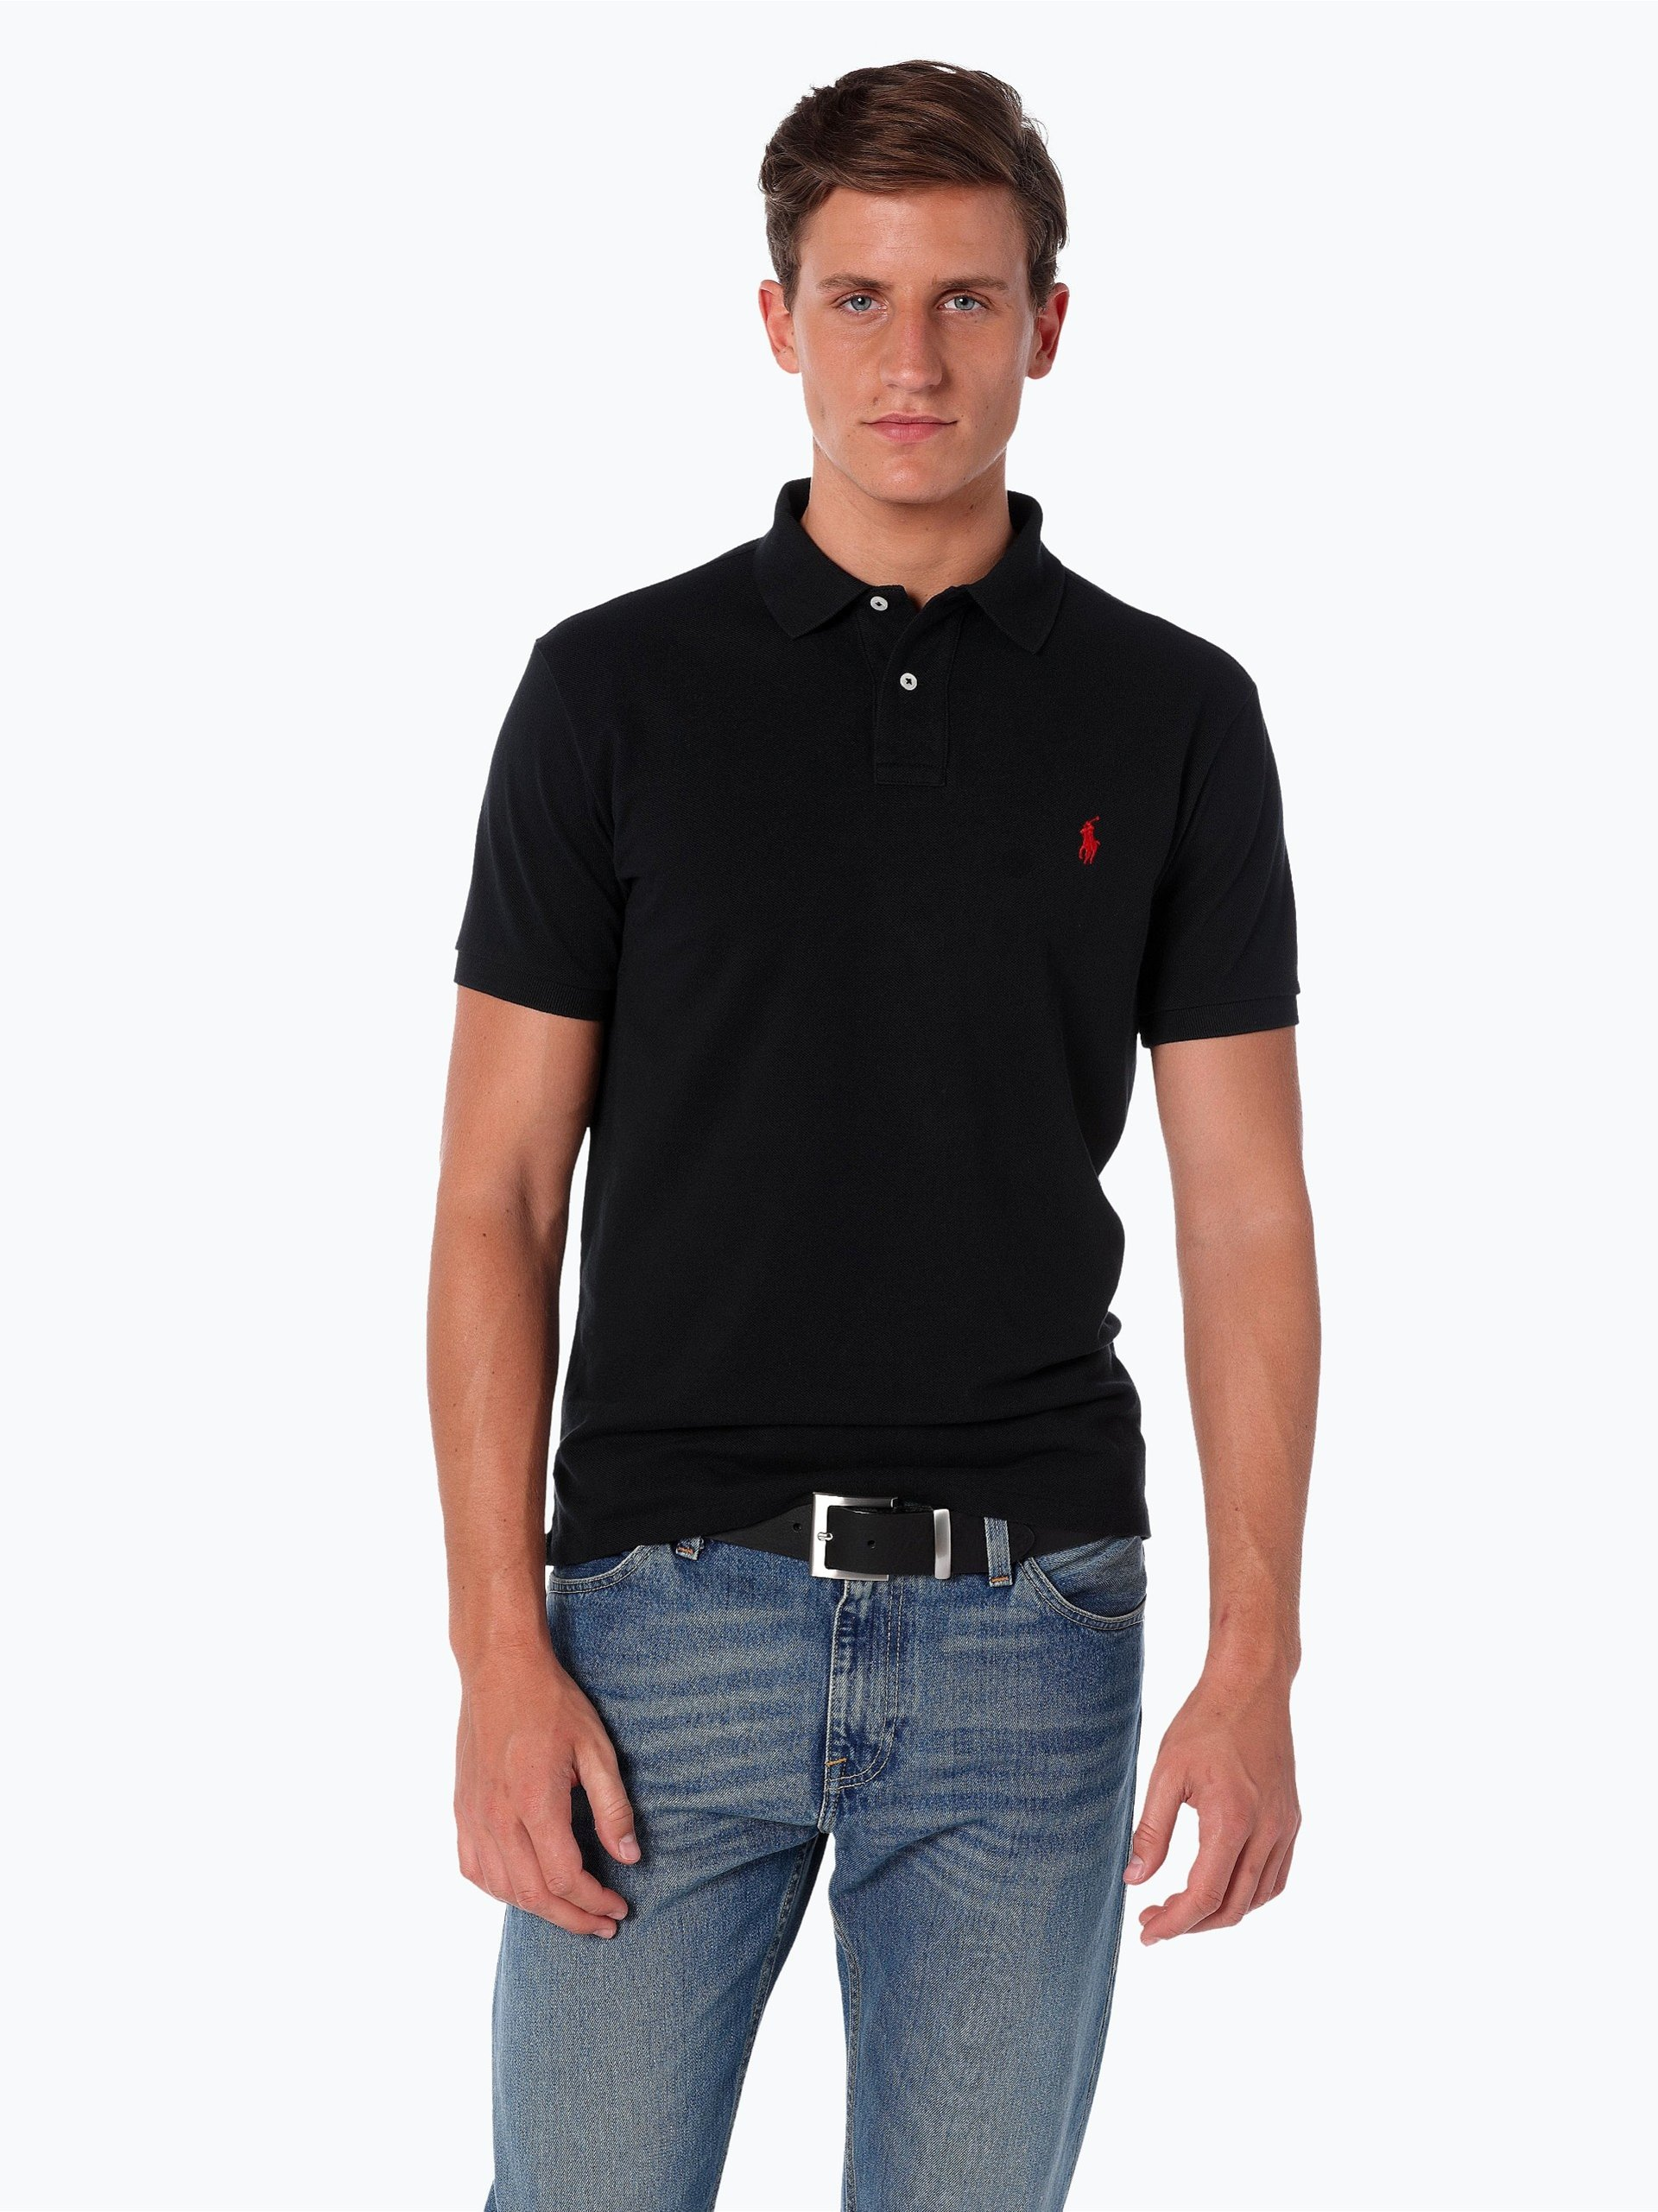 polo ralph lauren herren poloshirt schwarz uni online. Black Bedroom Furniture Sets. Home Design Ideas